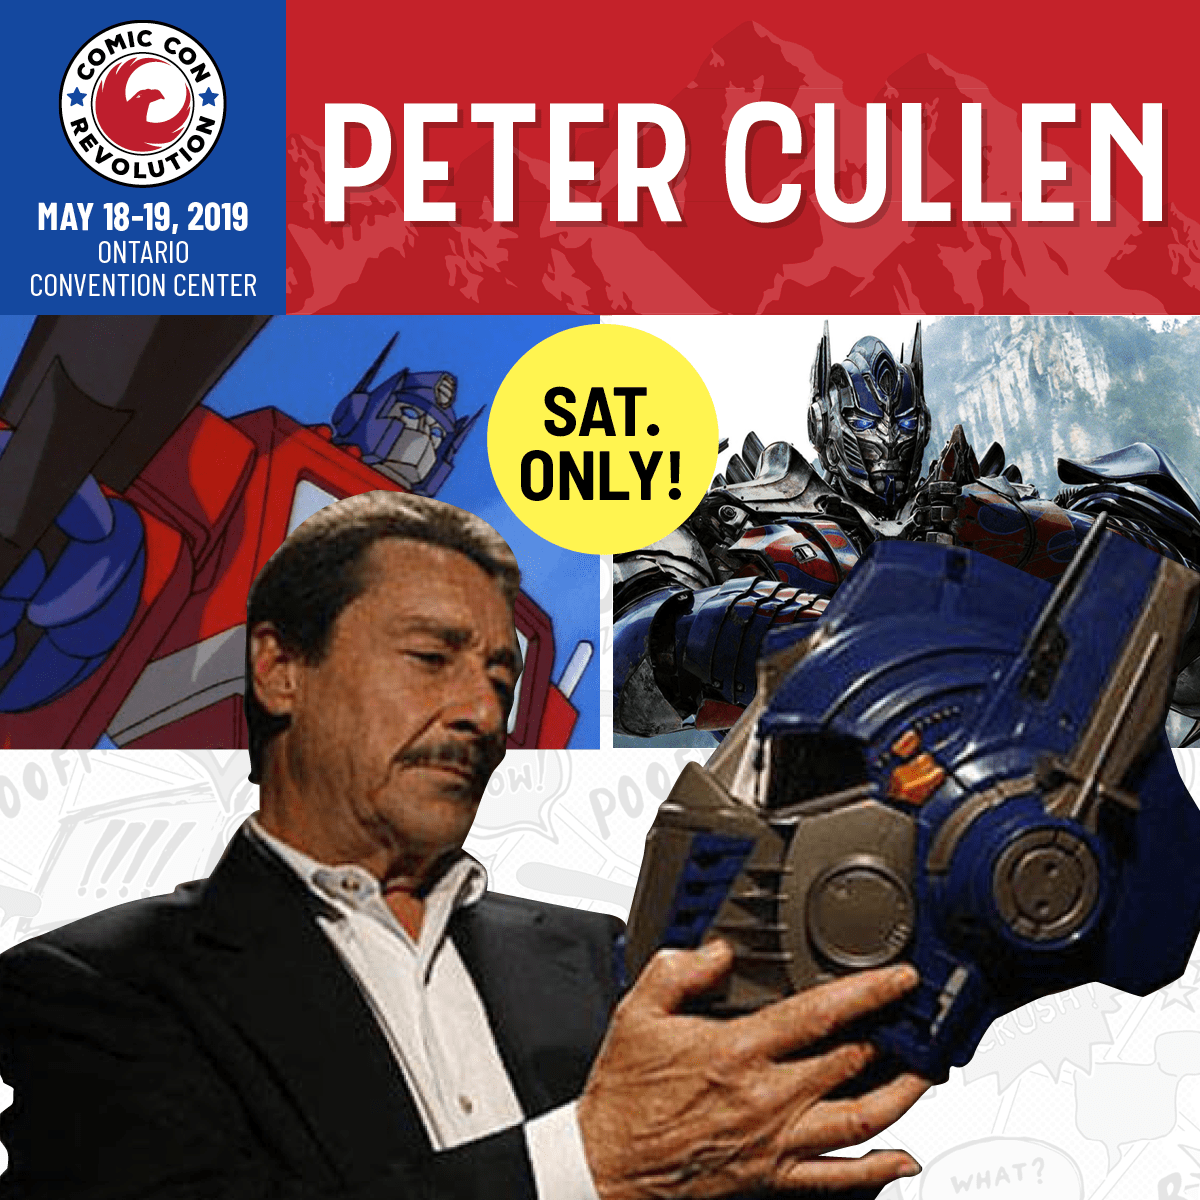 Peter Cullen, Iconic Voice Of Optimus Prime, Rolls Out To